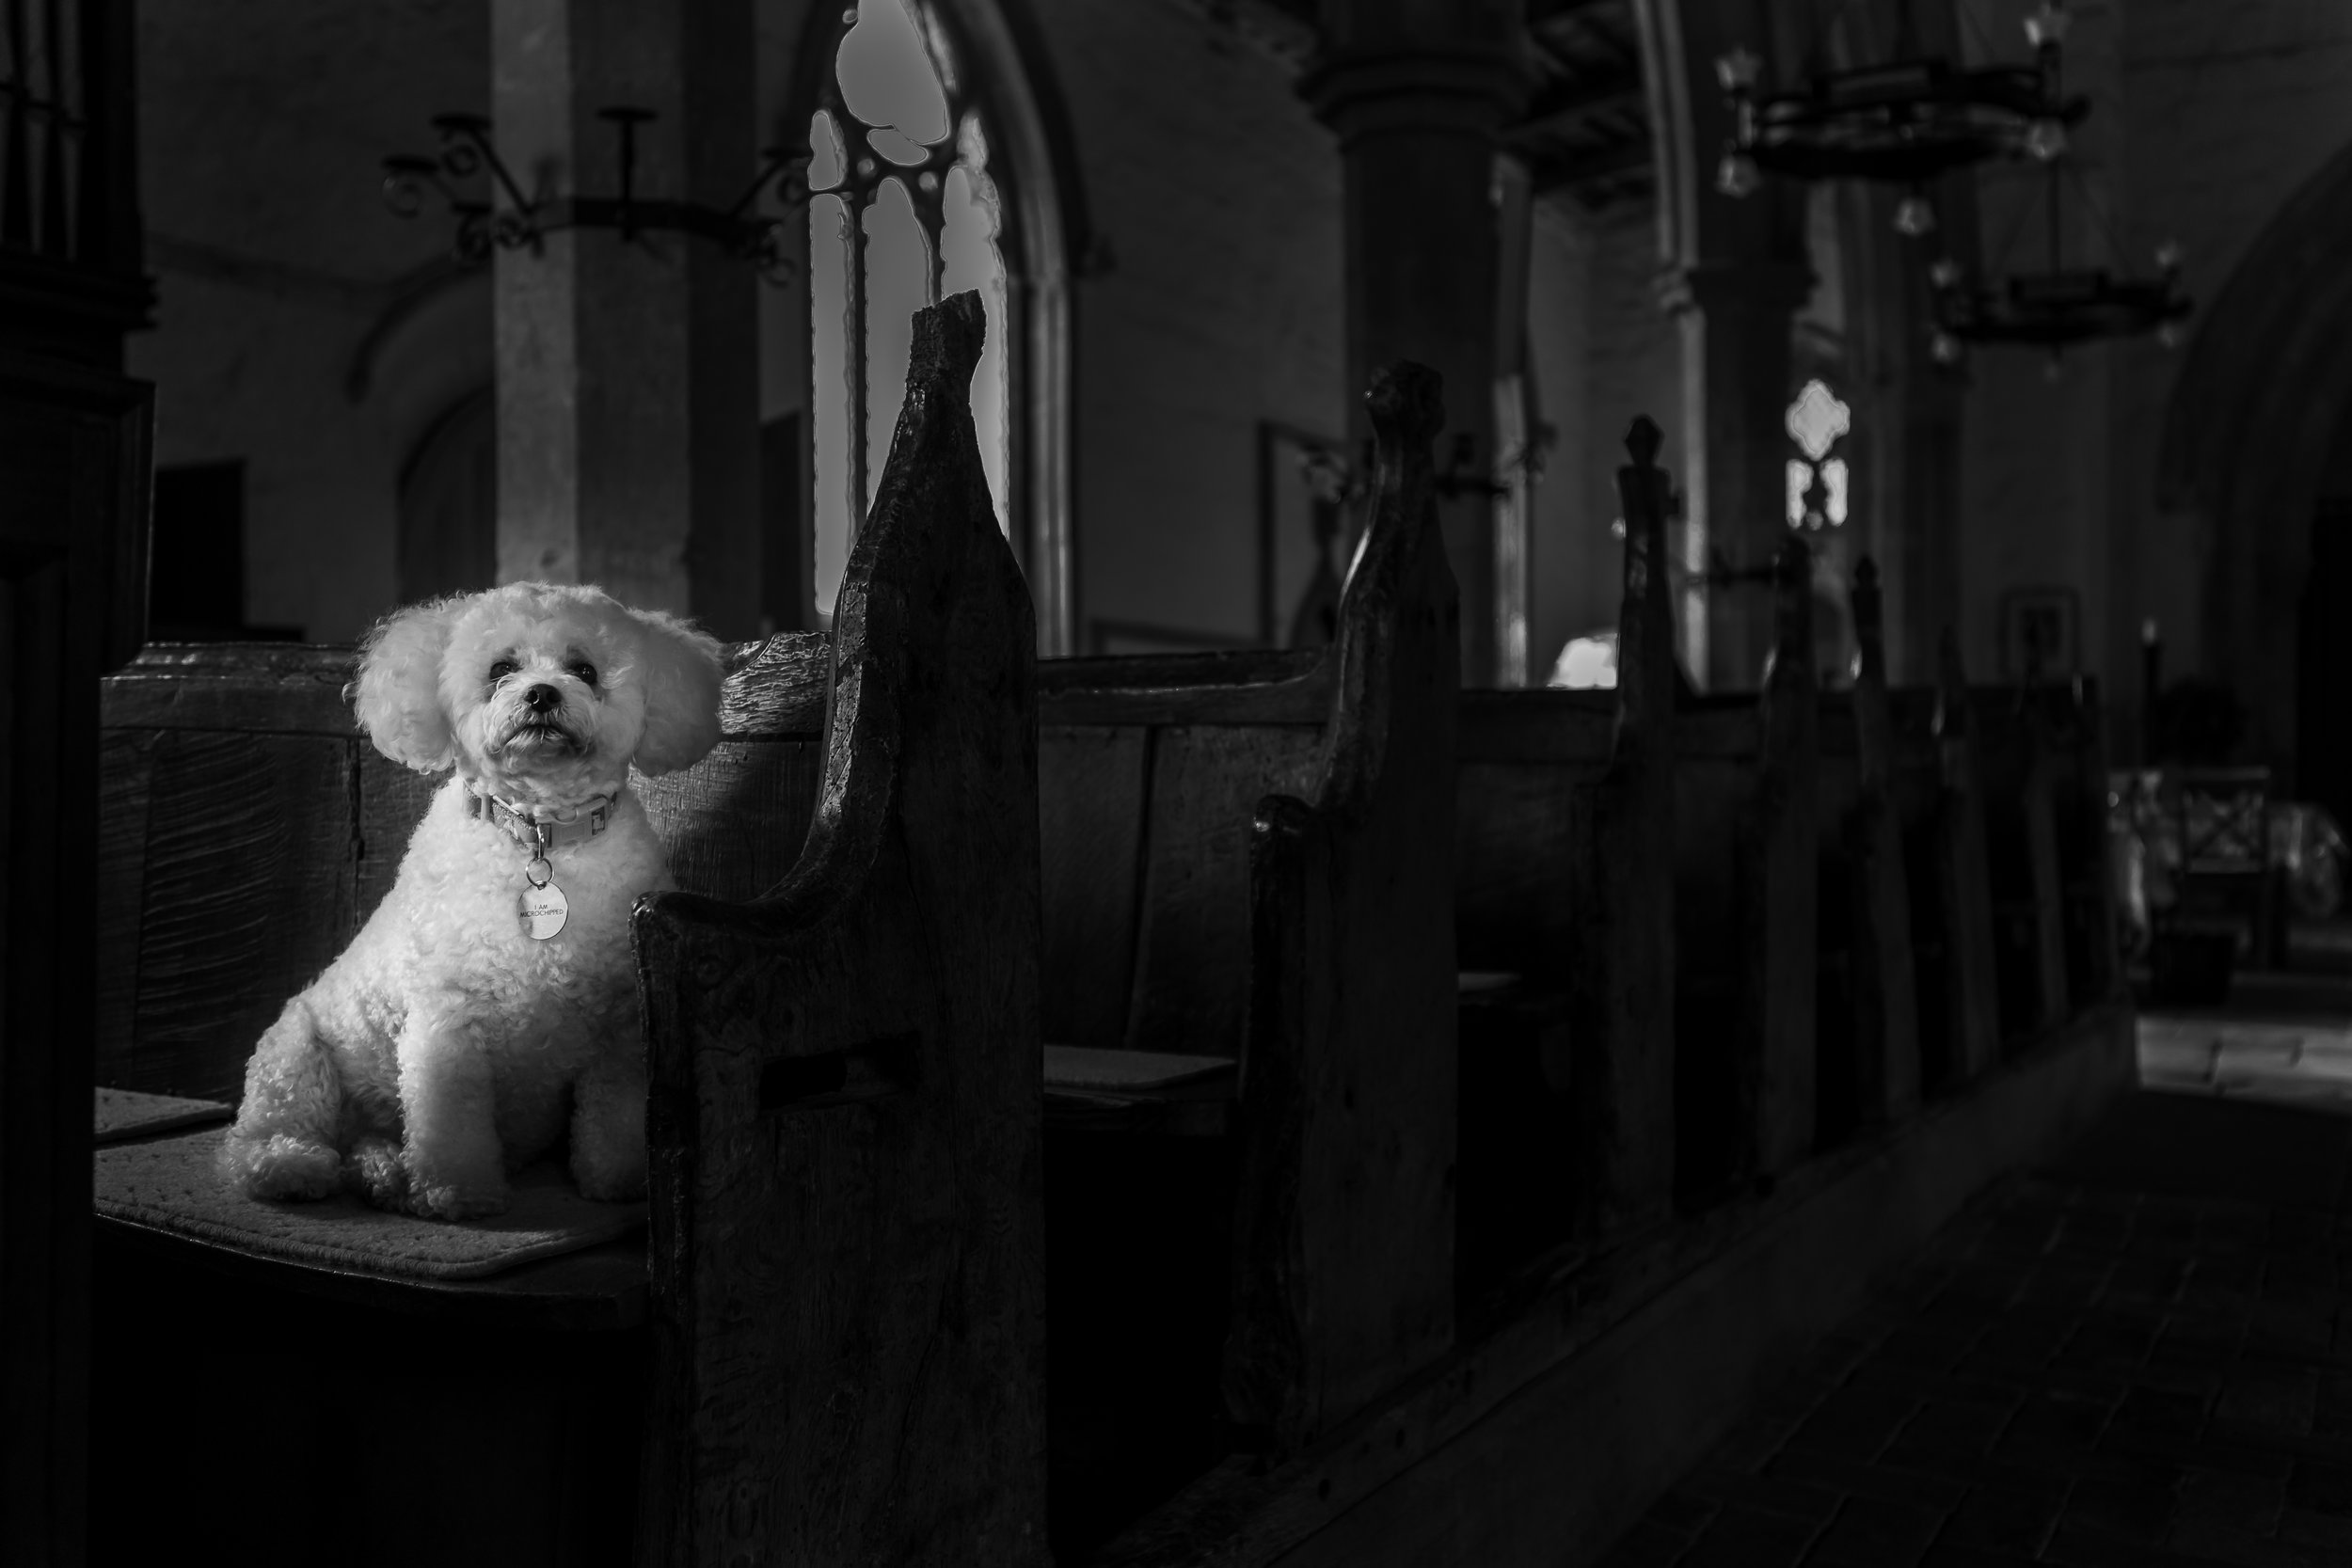 Bichon Frise in a church